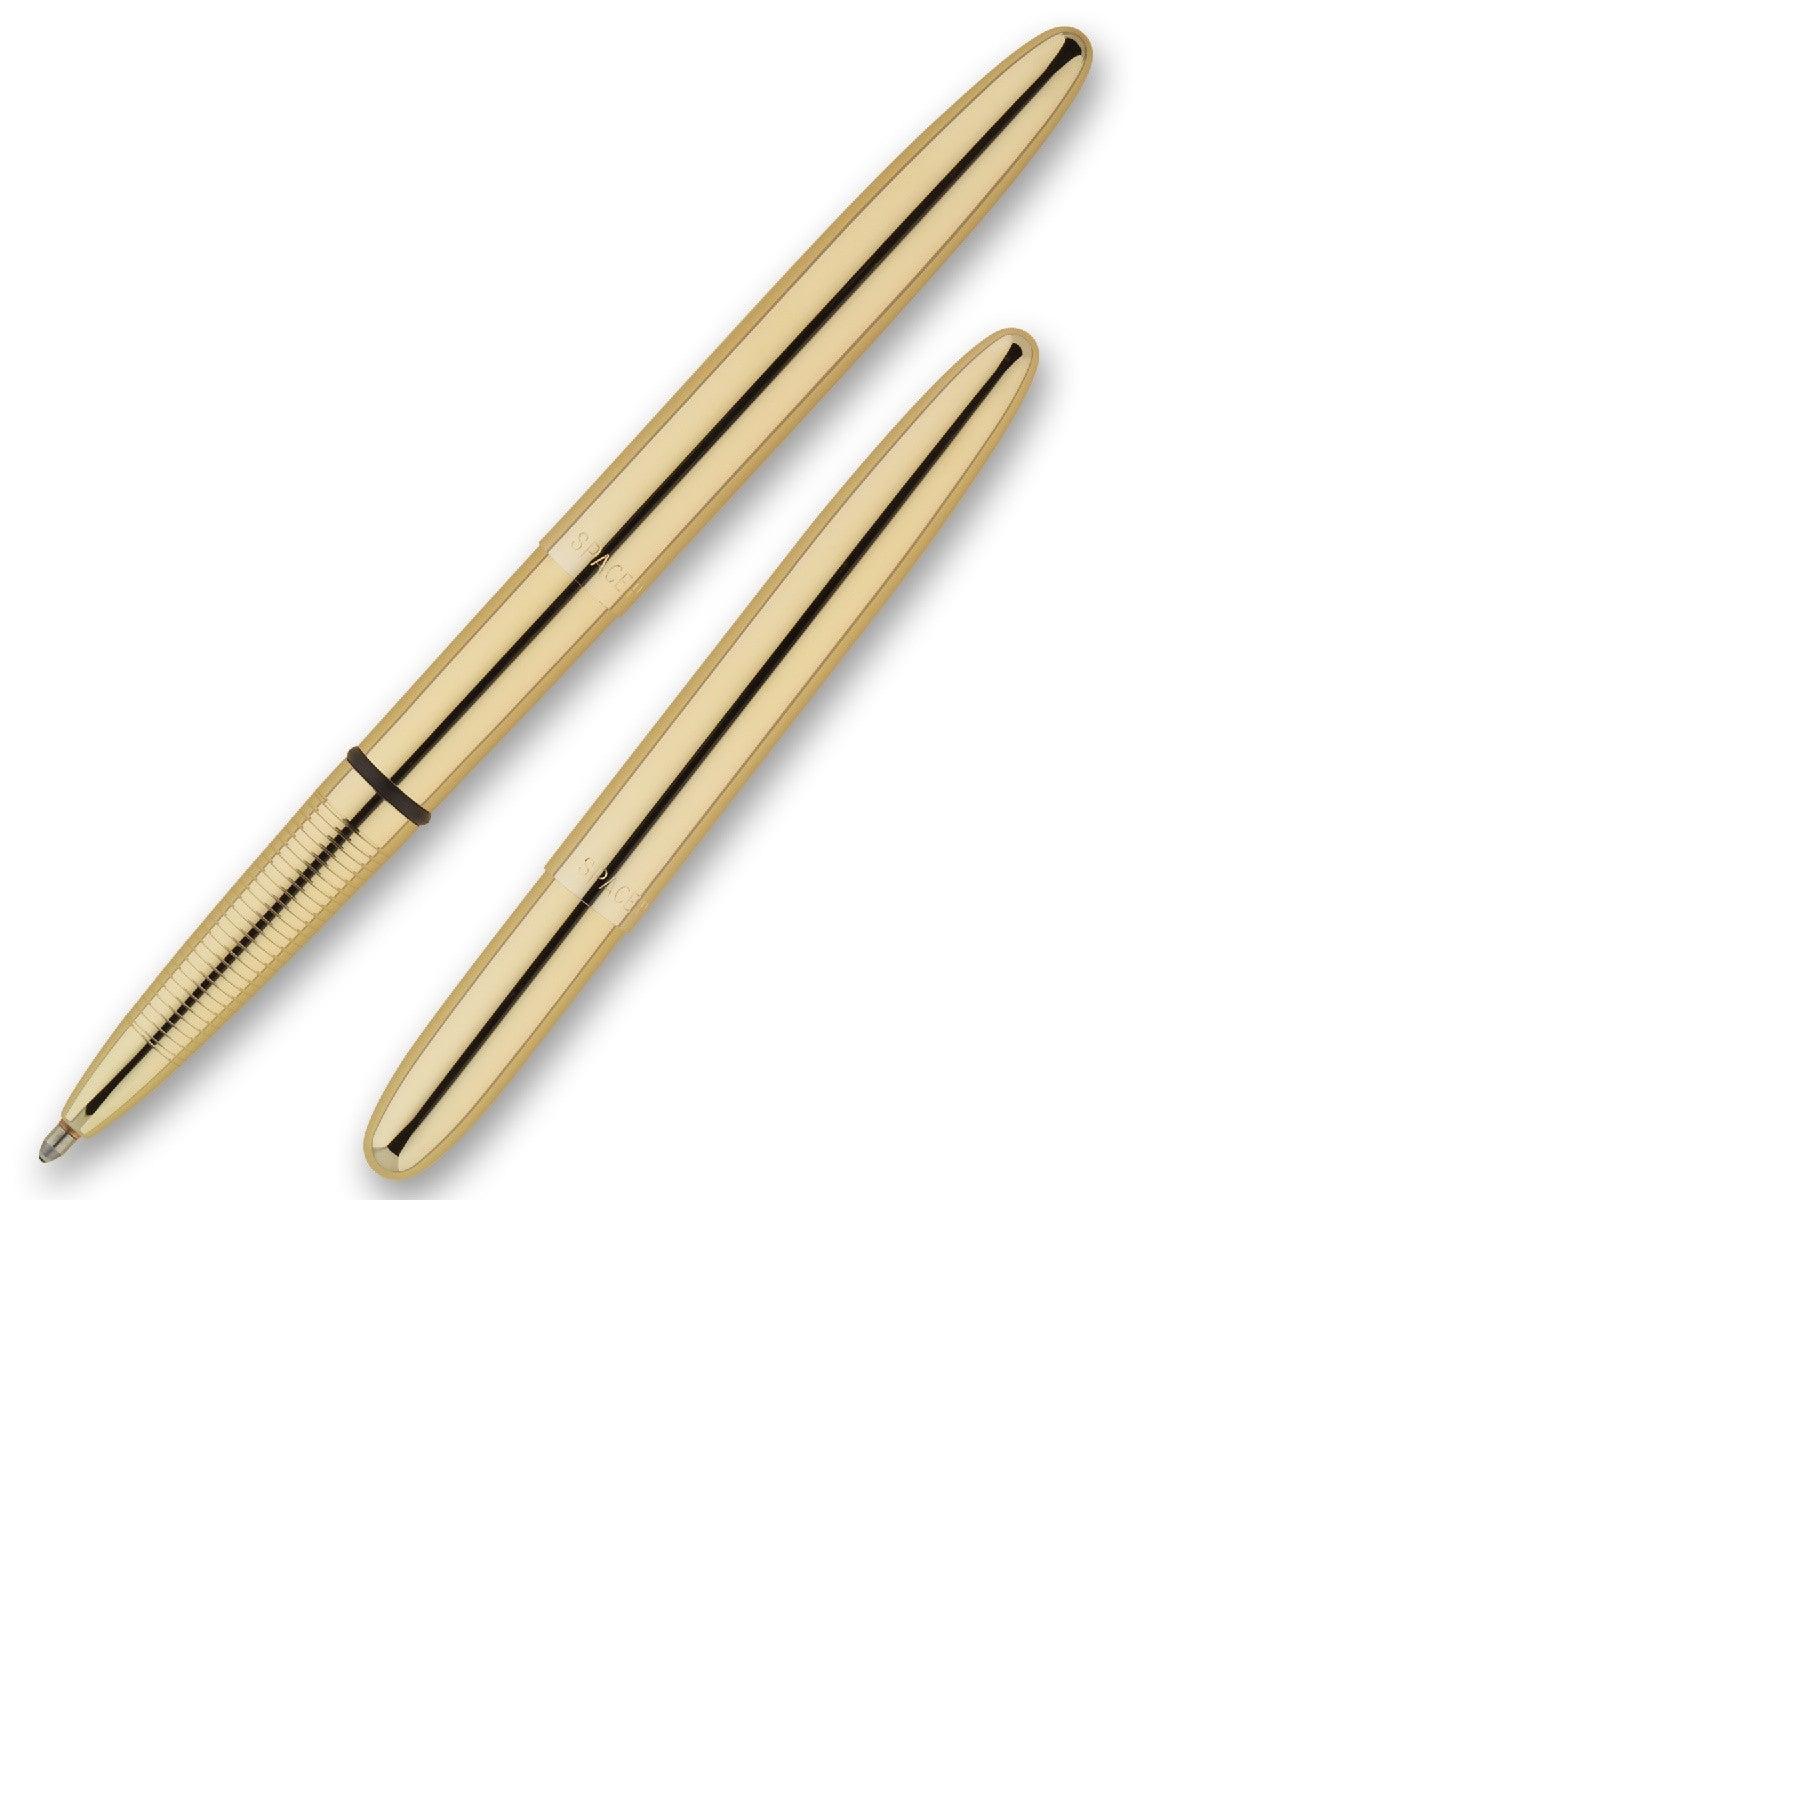 Bullet Space Pen Titanium Gold Finish